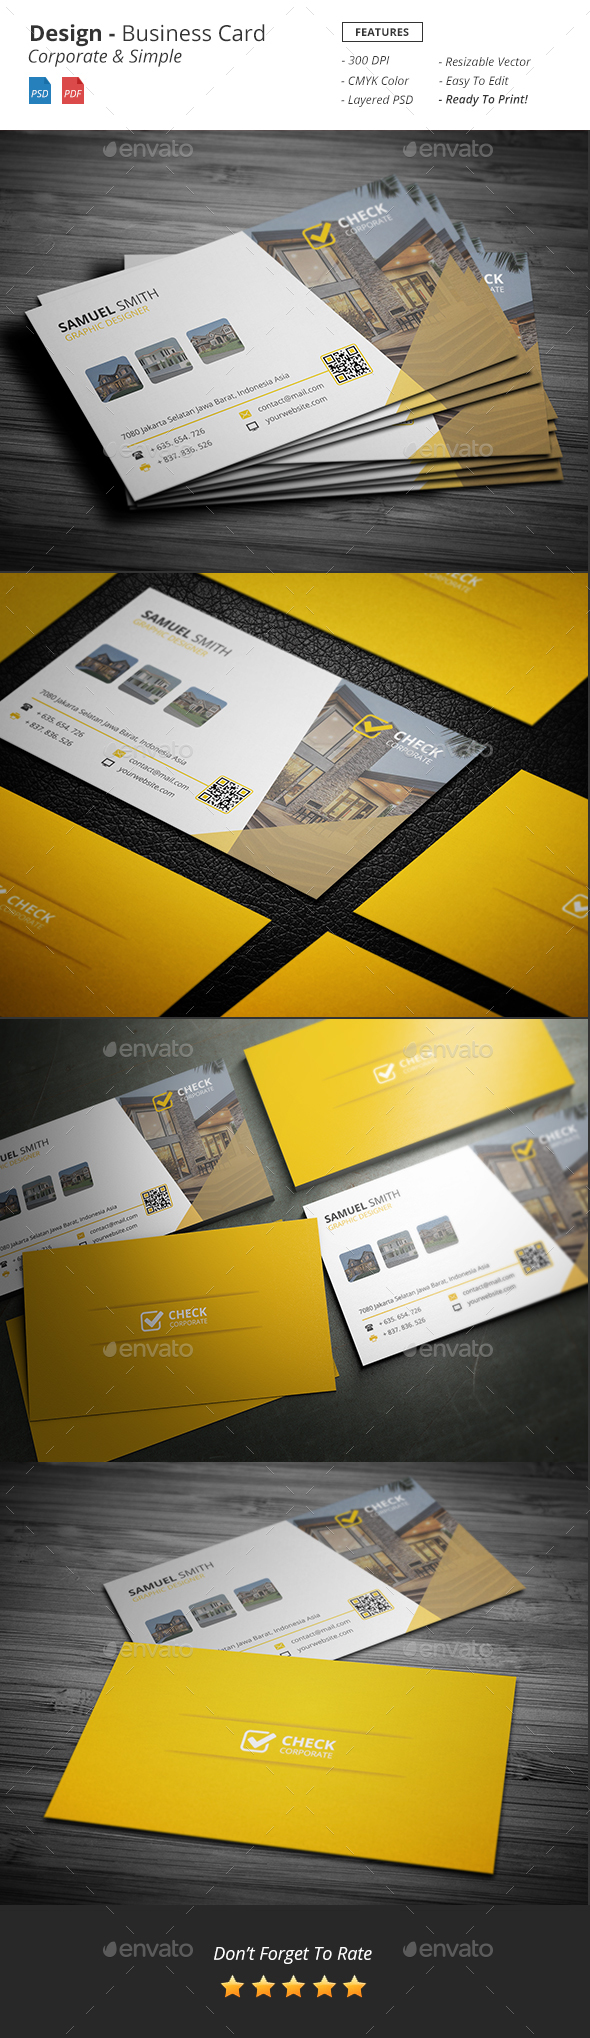 Design - Business Card - Industry Specific Business Cards